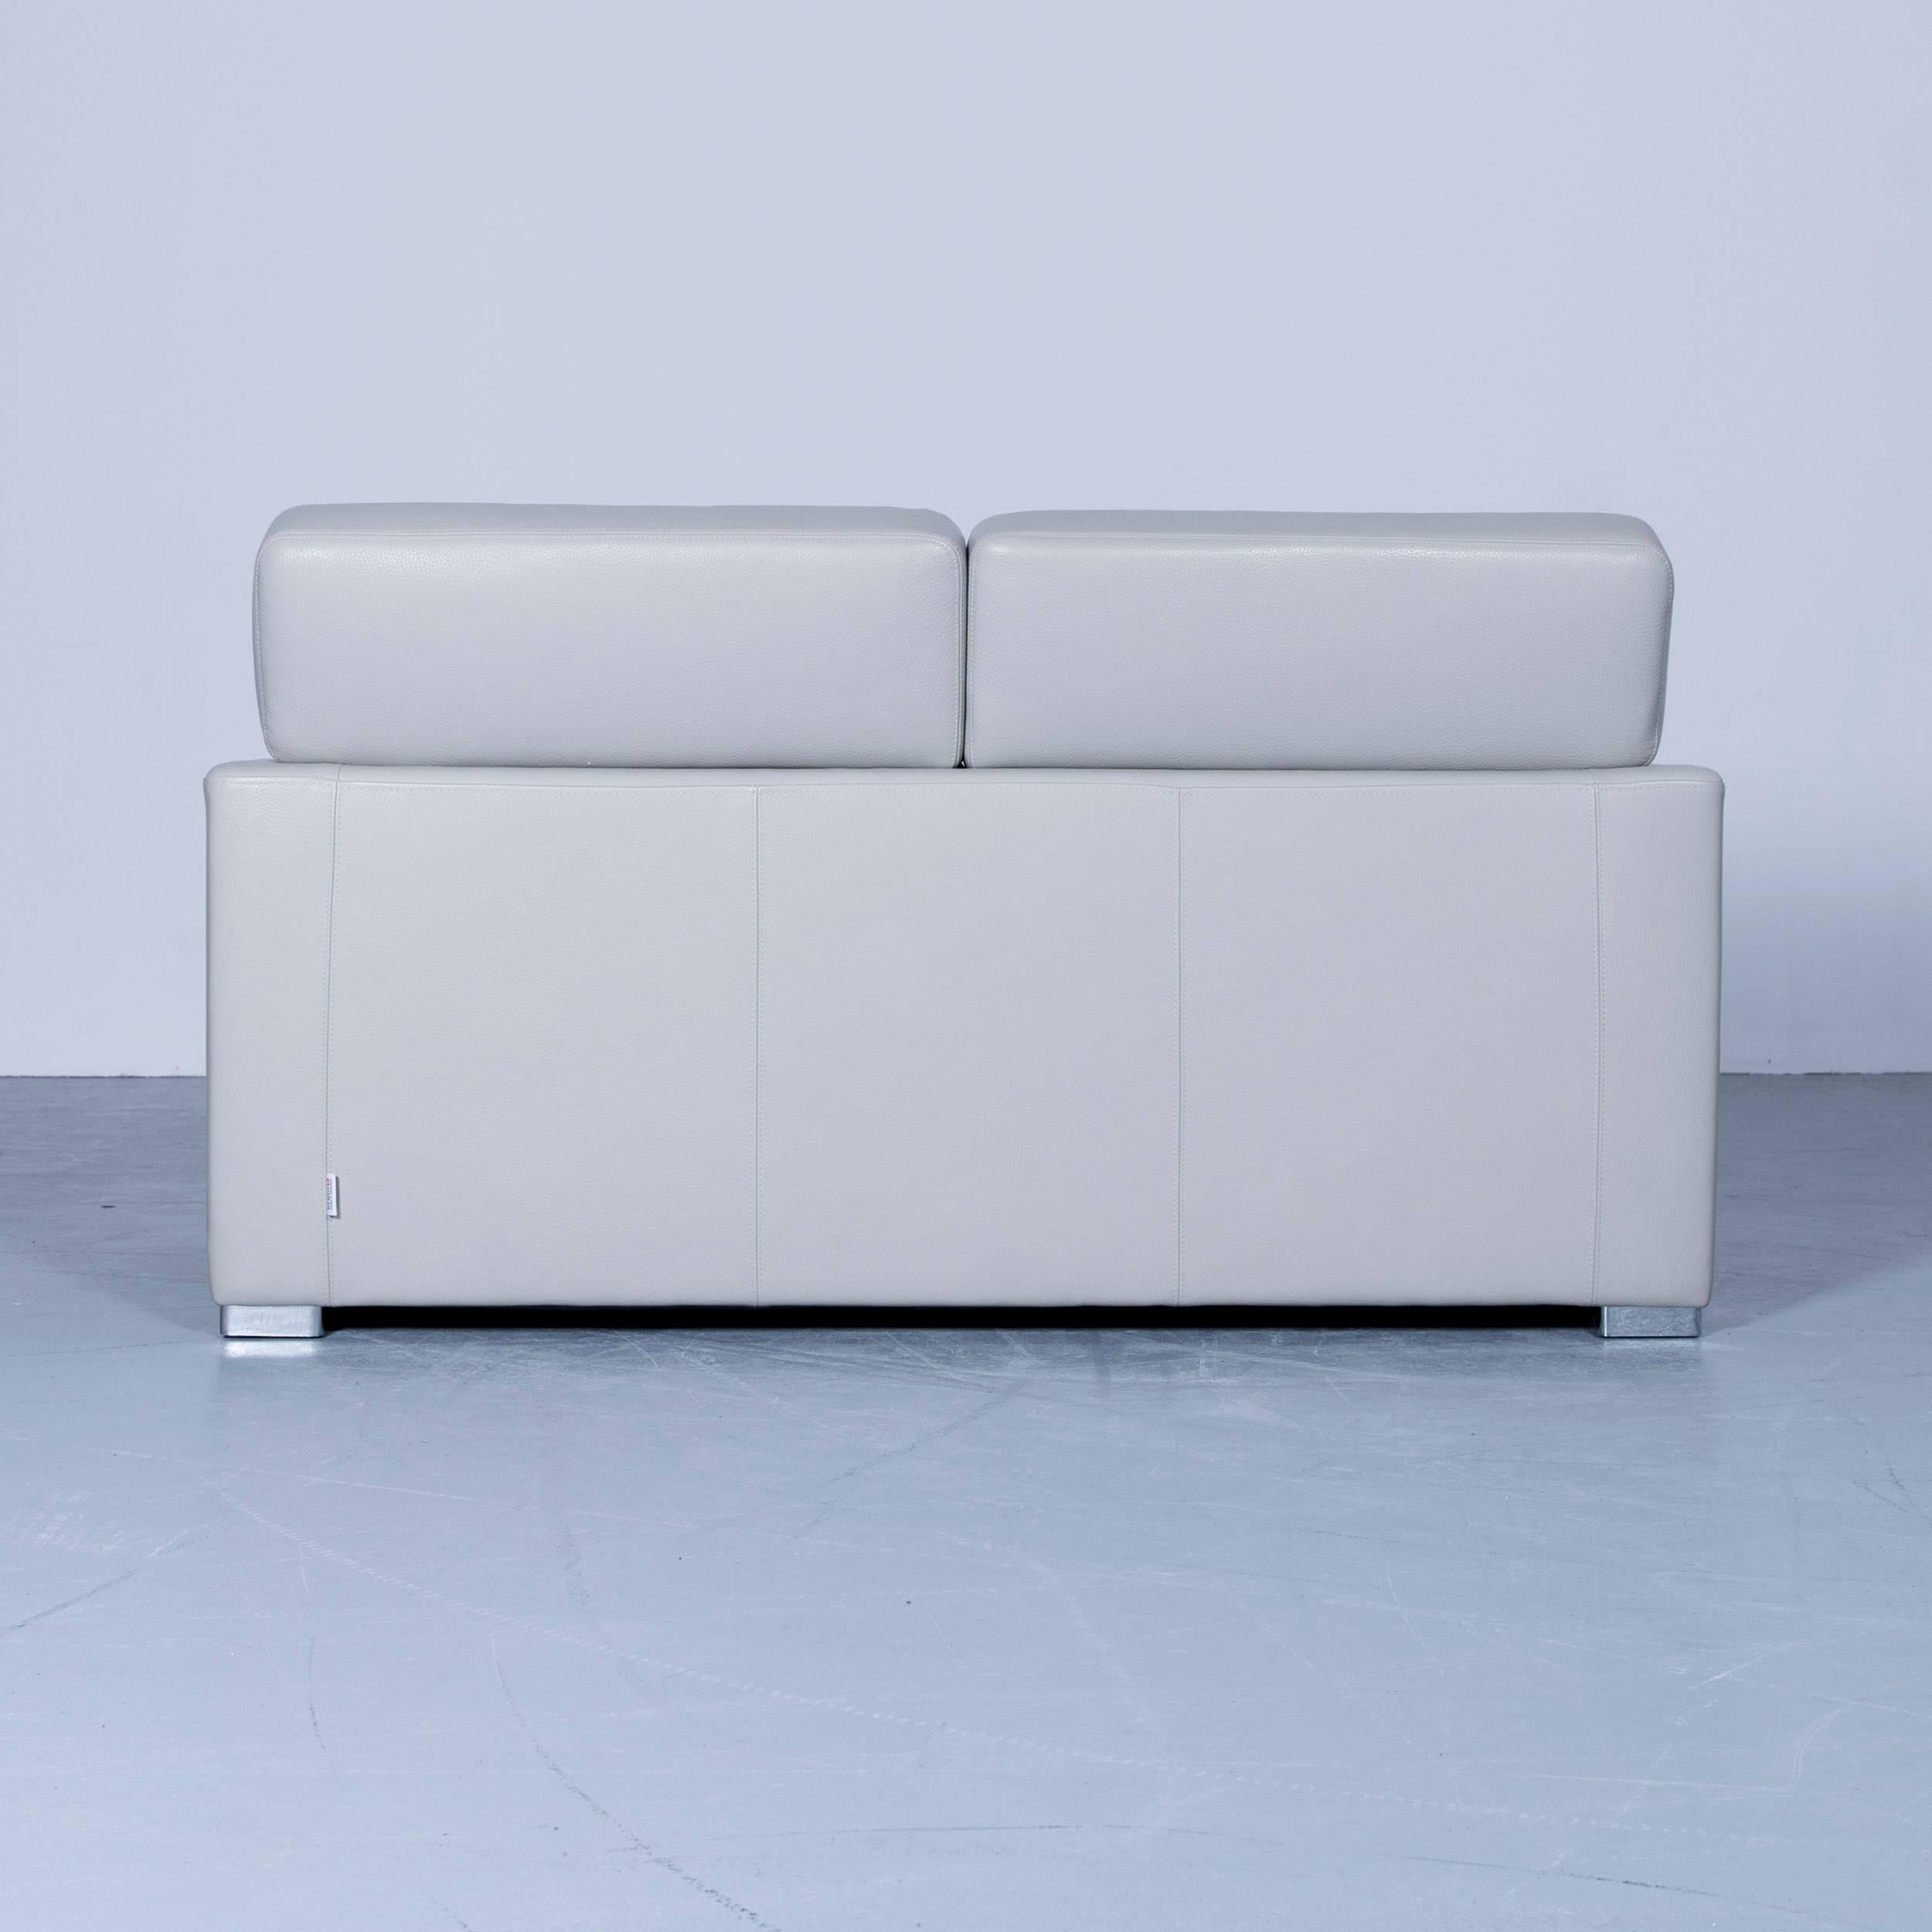 polstermbel design cheap amazing comfortable rolf benz sofa in blue with white cushions in. Black Bedroom Furniture Sets. Home Design Ideas